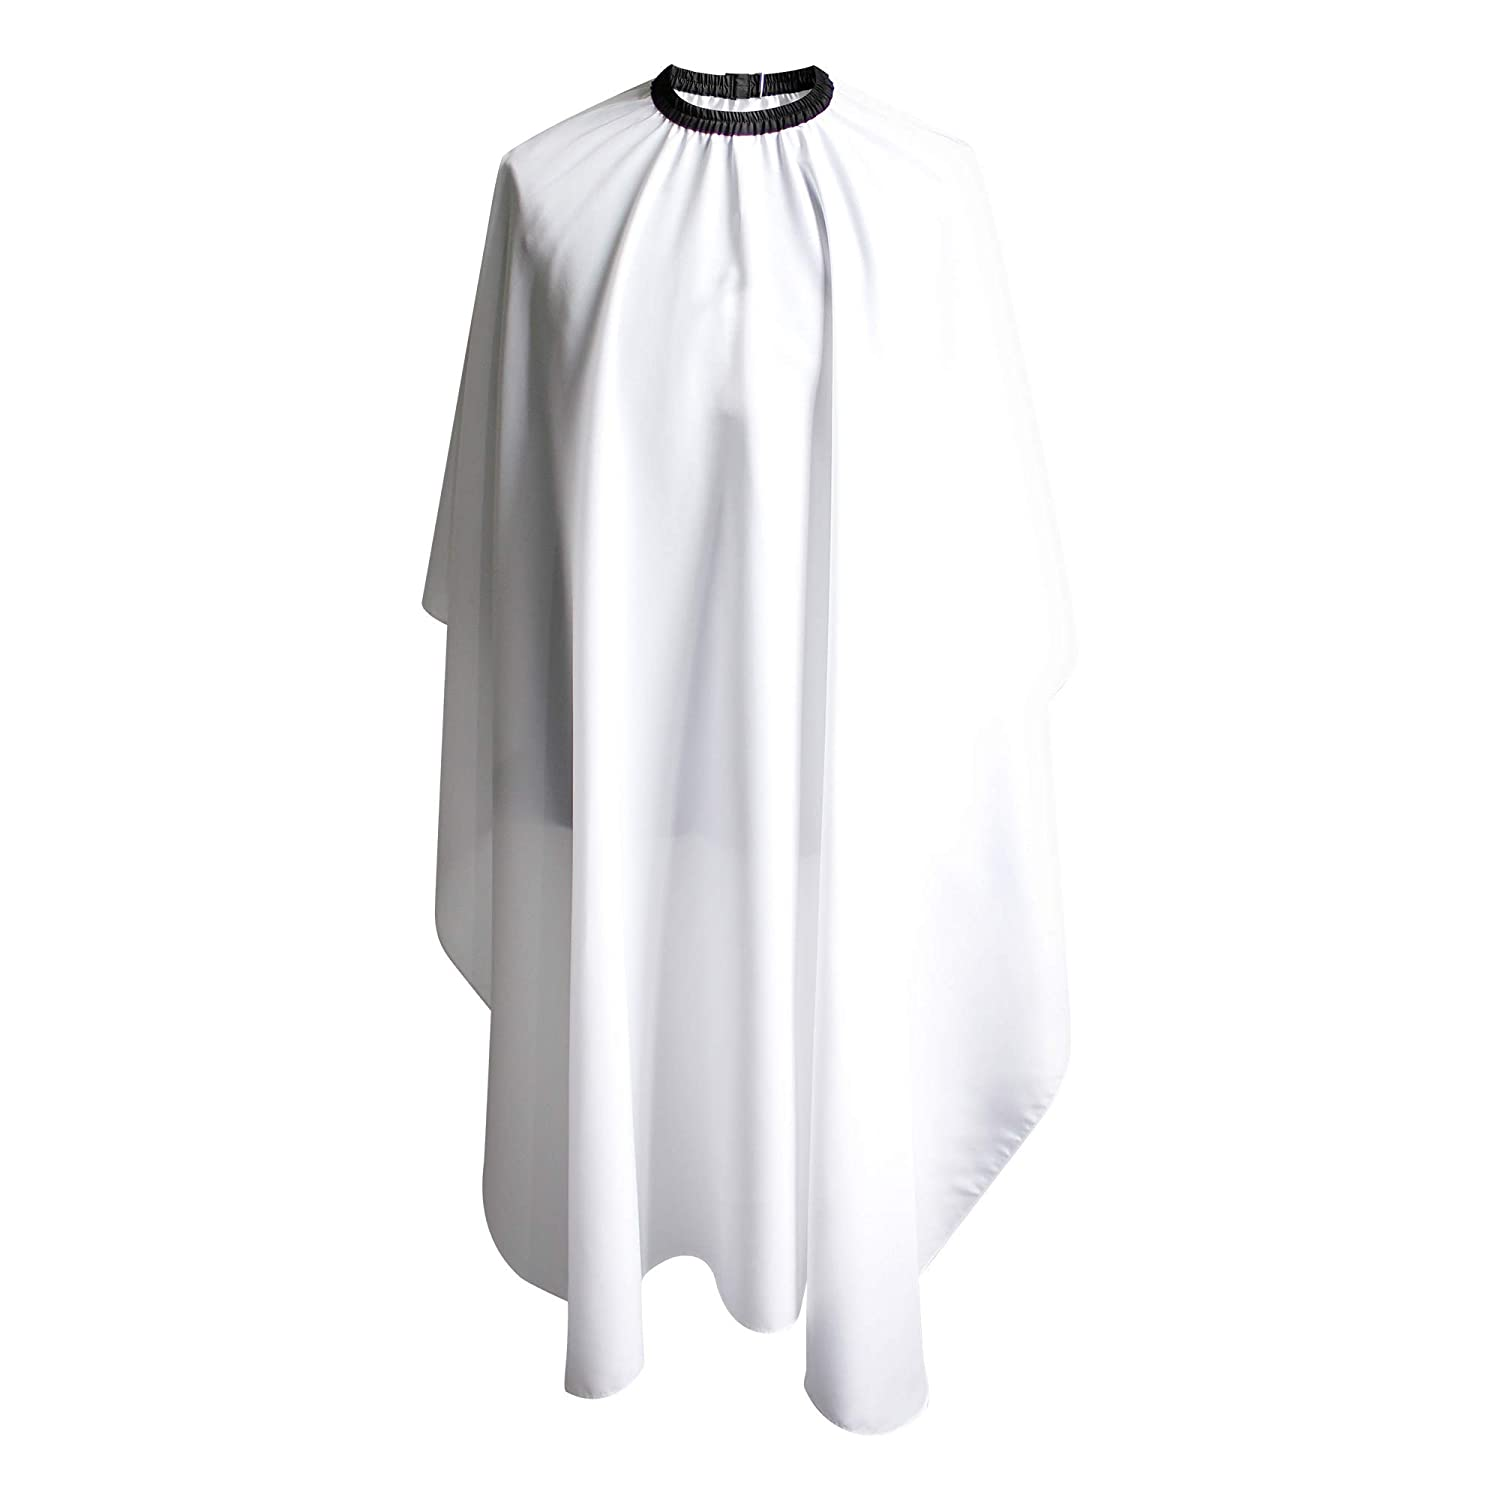 "SMARTHAIR Professional Salon Cape Polyester Haircut Apron Hair Cut Cape, 54""x62"", White, C026005B 54""x62"" Smart hair"